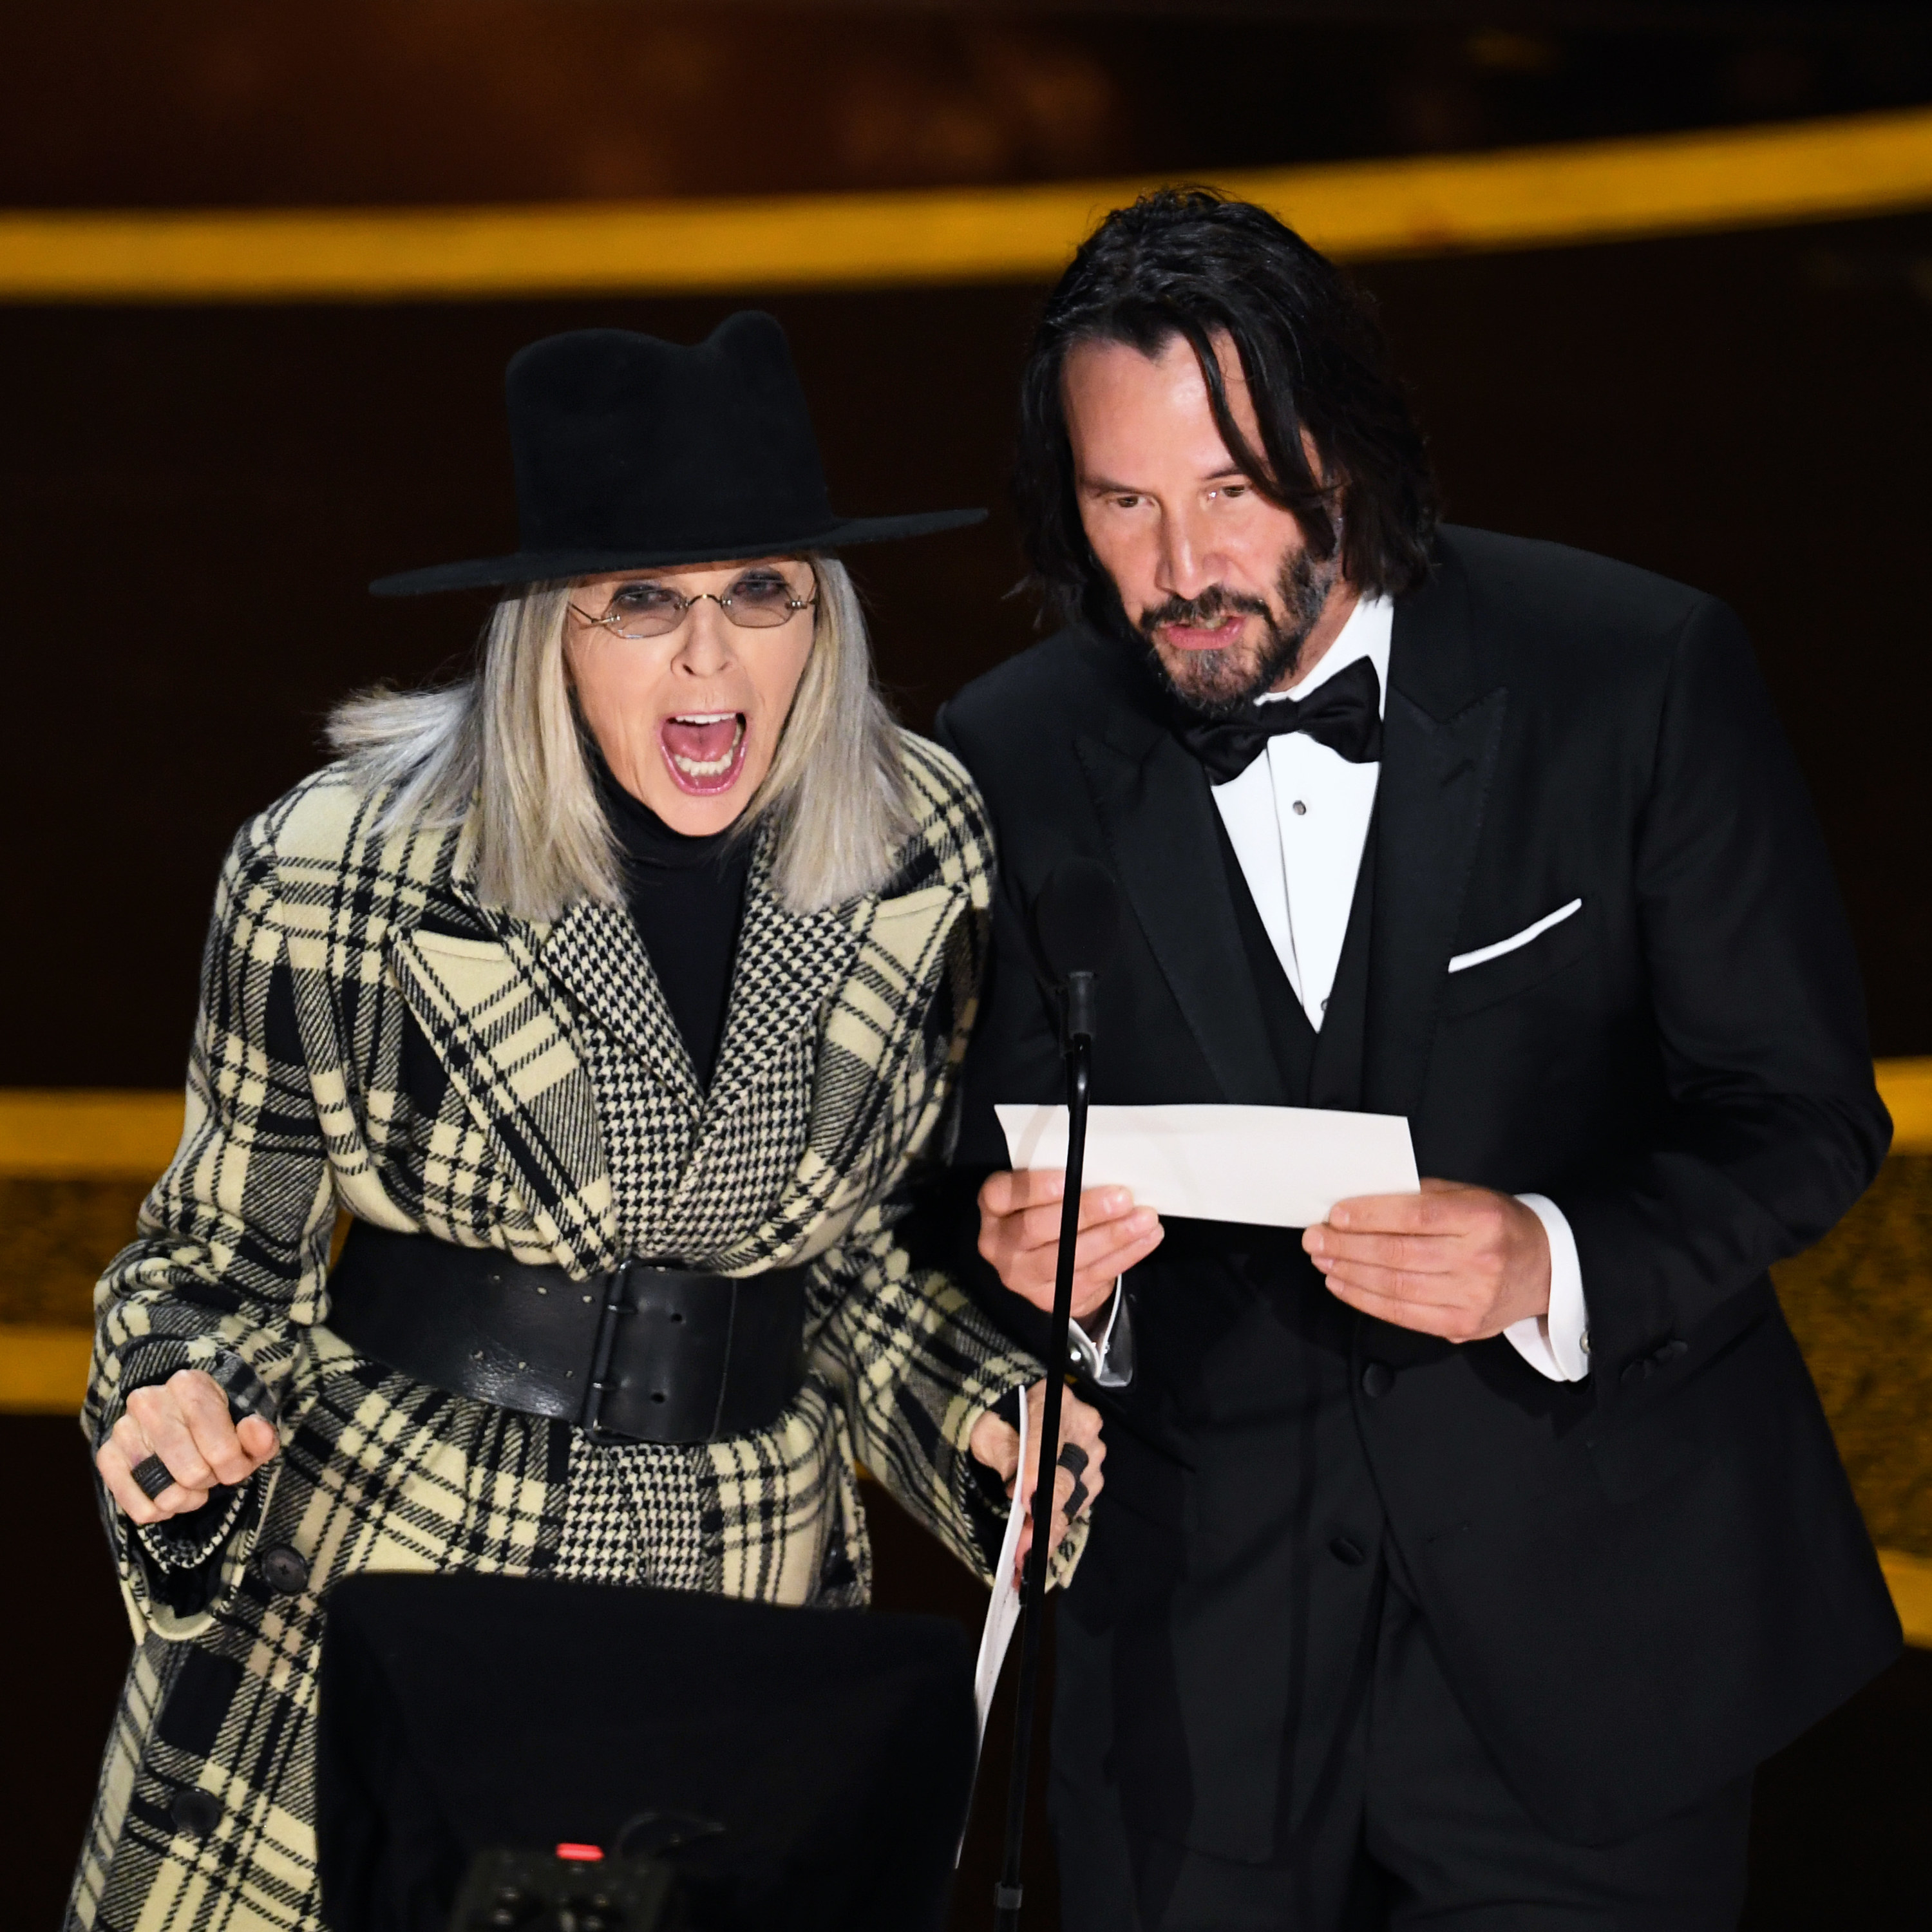 Diana and Keanu Reeves presenting an award on stage